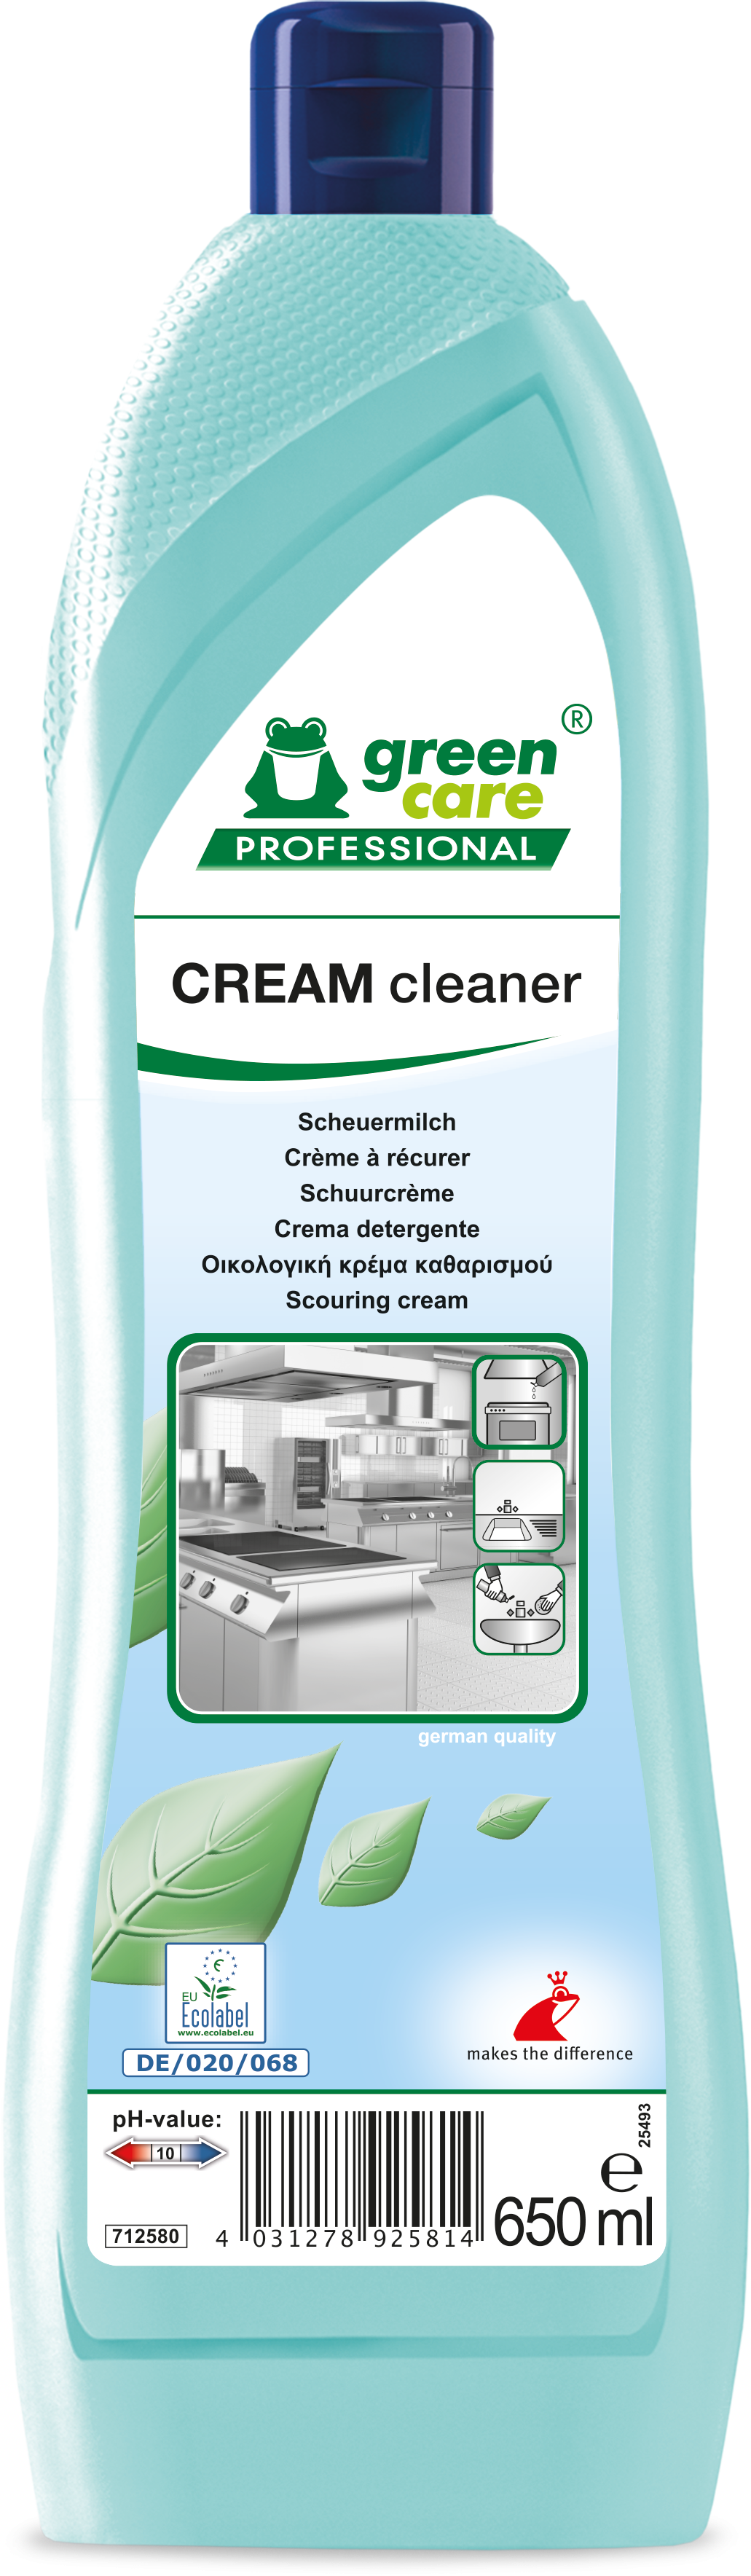 Tana Green Care Cream Cleaner 10 x 650 ml